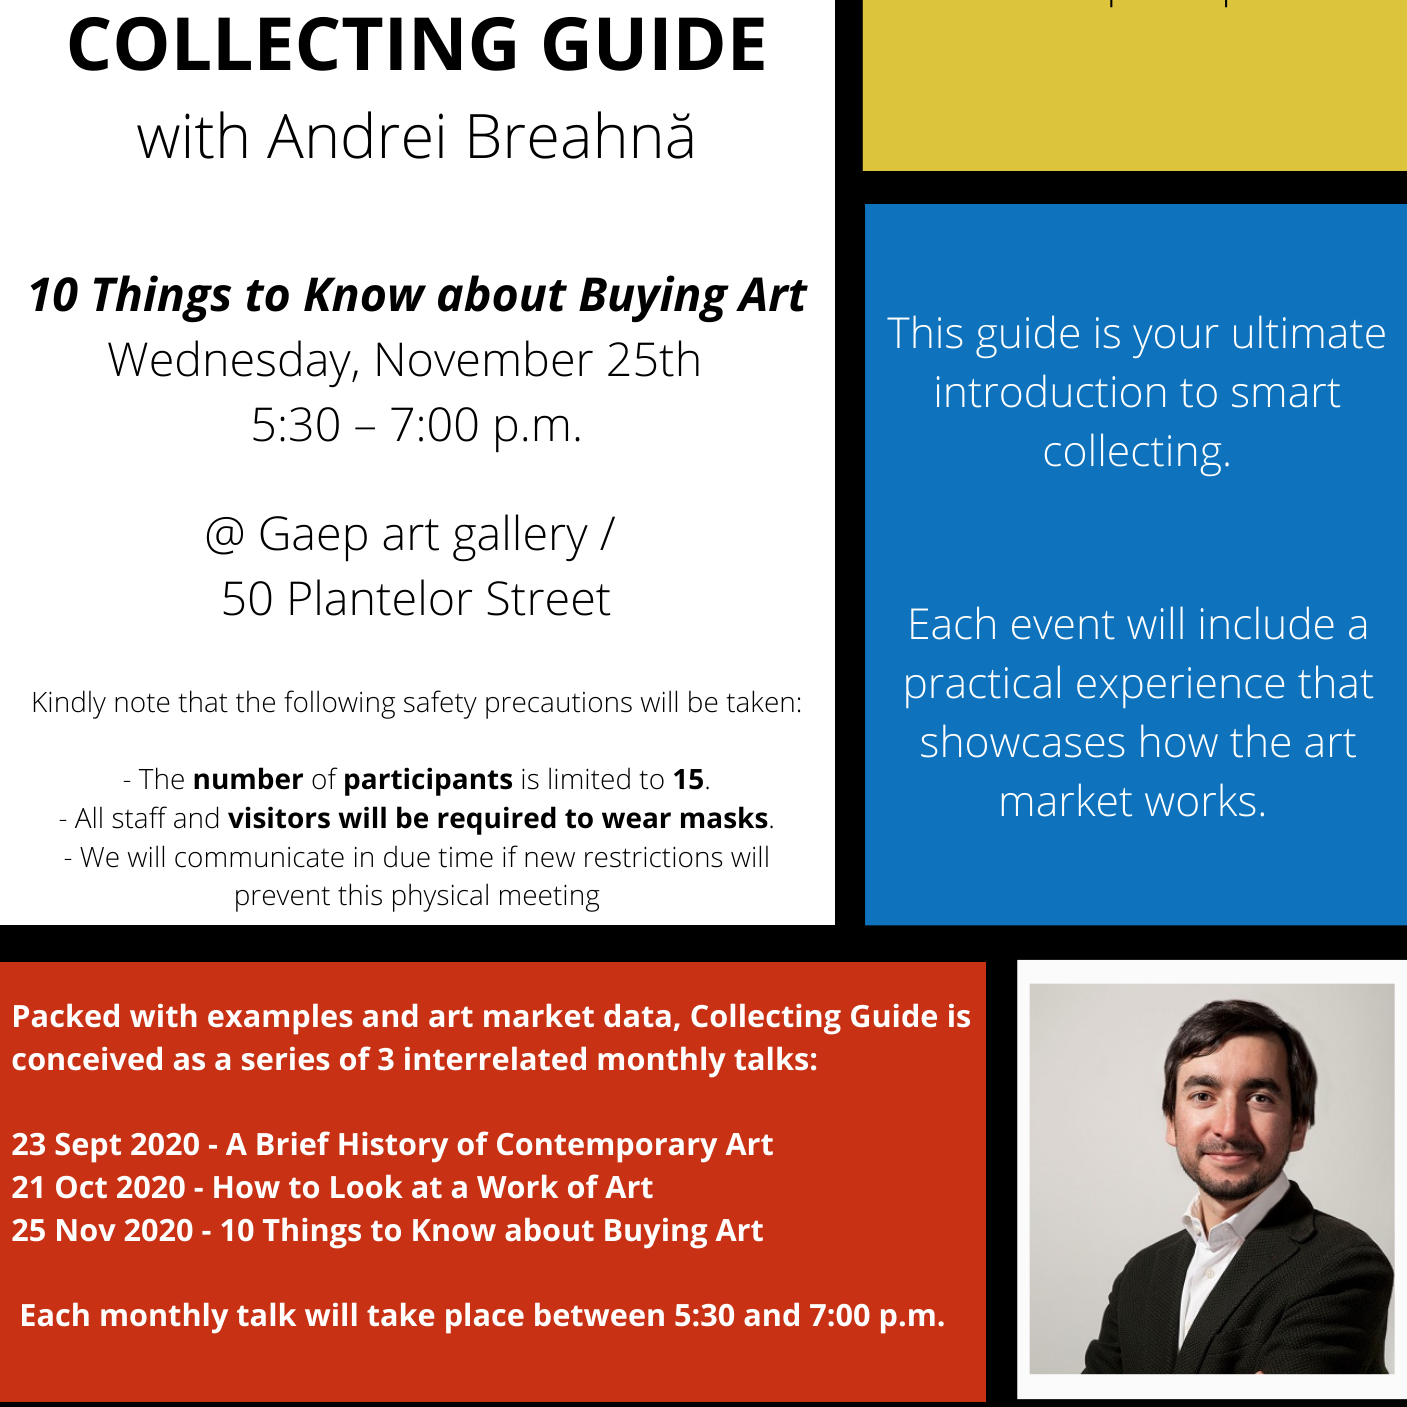 COLLECTING GUIDE - 10 Things to Know about Buying Art